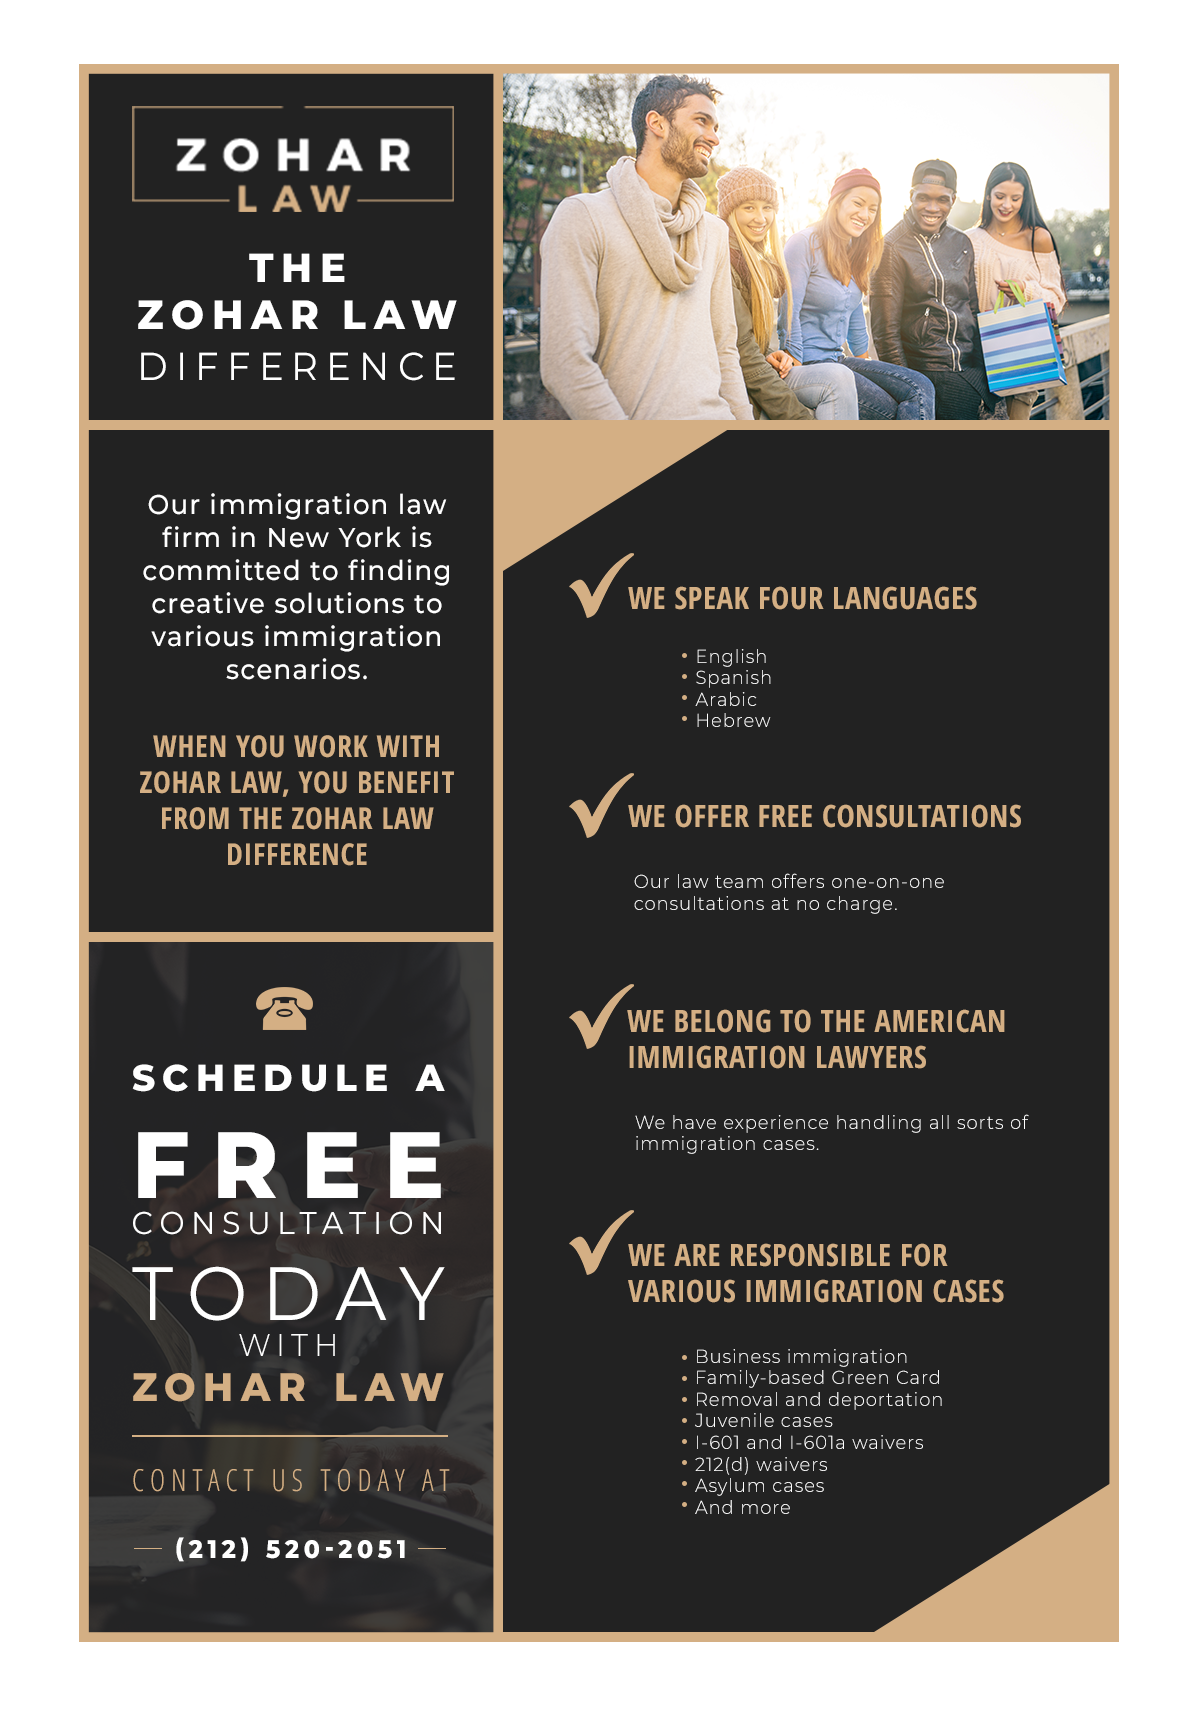 Zohar-Law-Differences-Infographic-5cd2f55297207.png